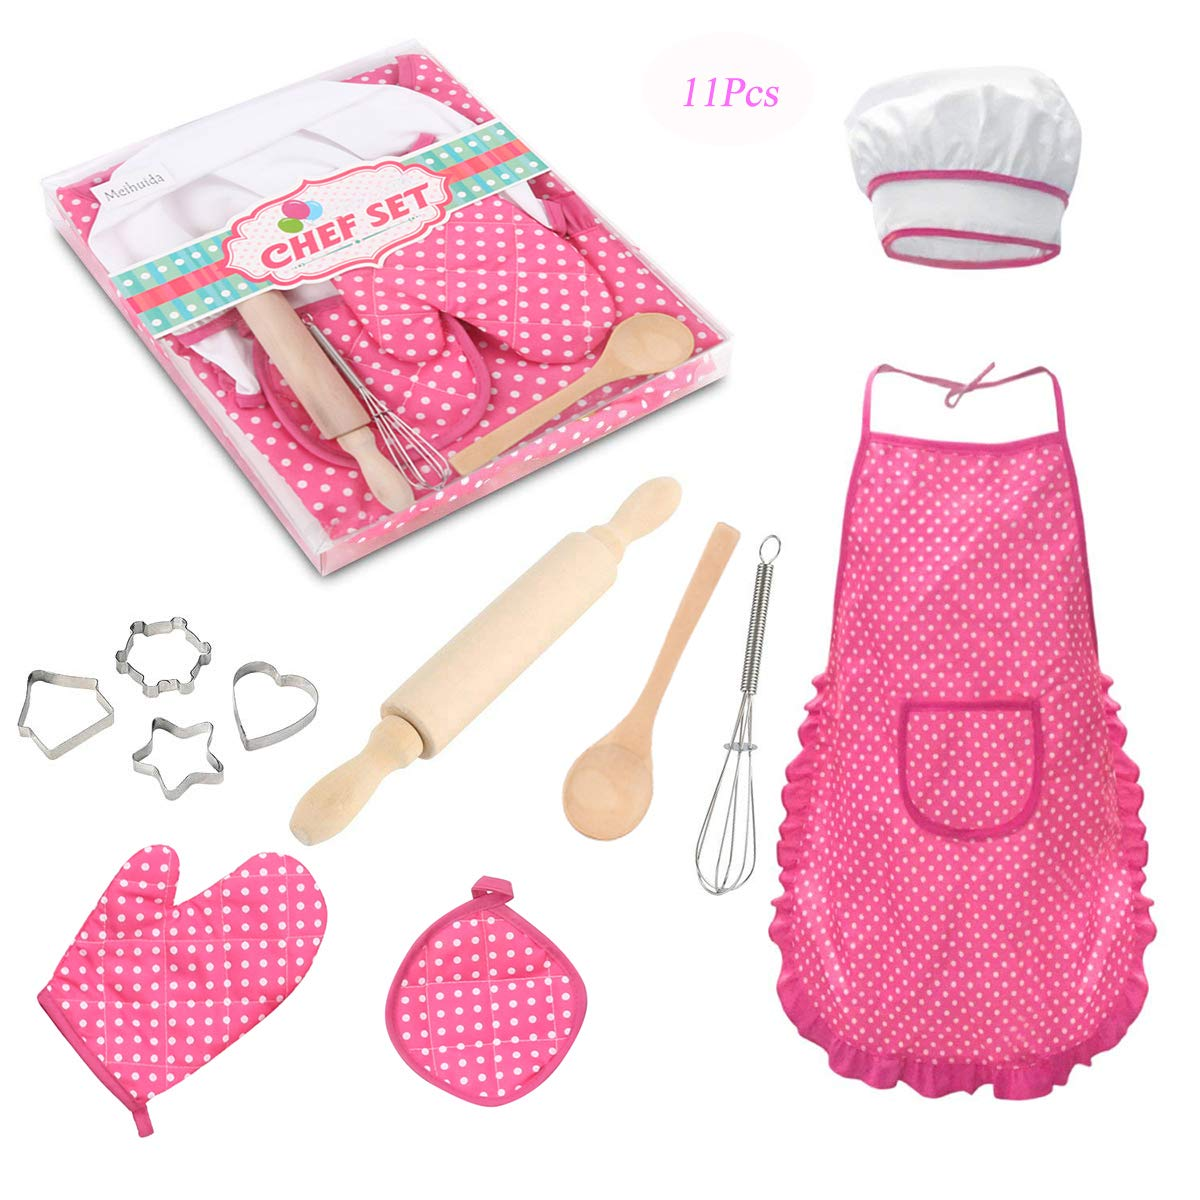 Meihuida Kids Chef Set for Girls, 11Pcs Cooking and Baking Set for Kids Toddler Dress up Pretend Play Kitchen Chef Costume Set with Apron, Chef Hat, Cooking Mitt and Cookie Cutters (Pink) by Meihuida